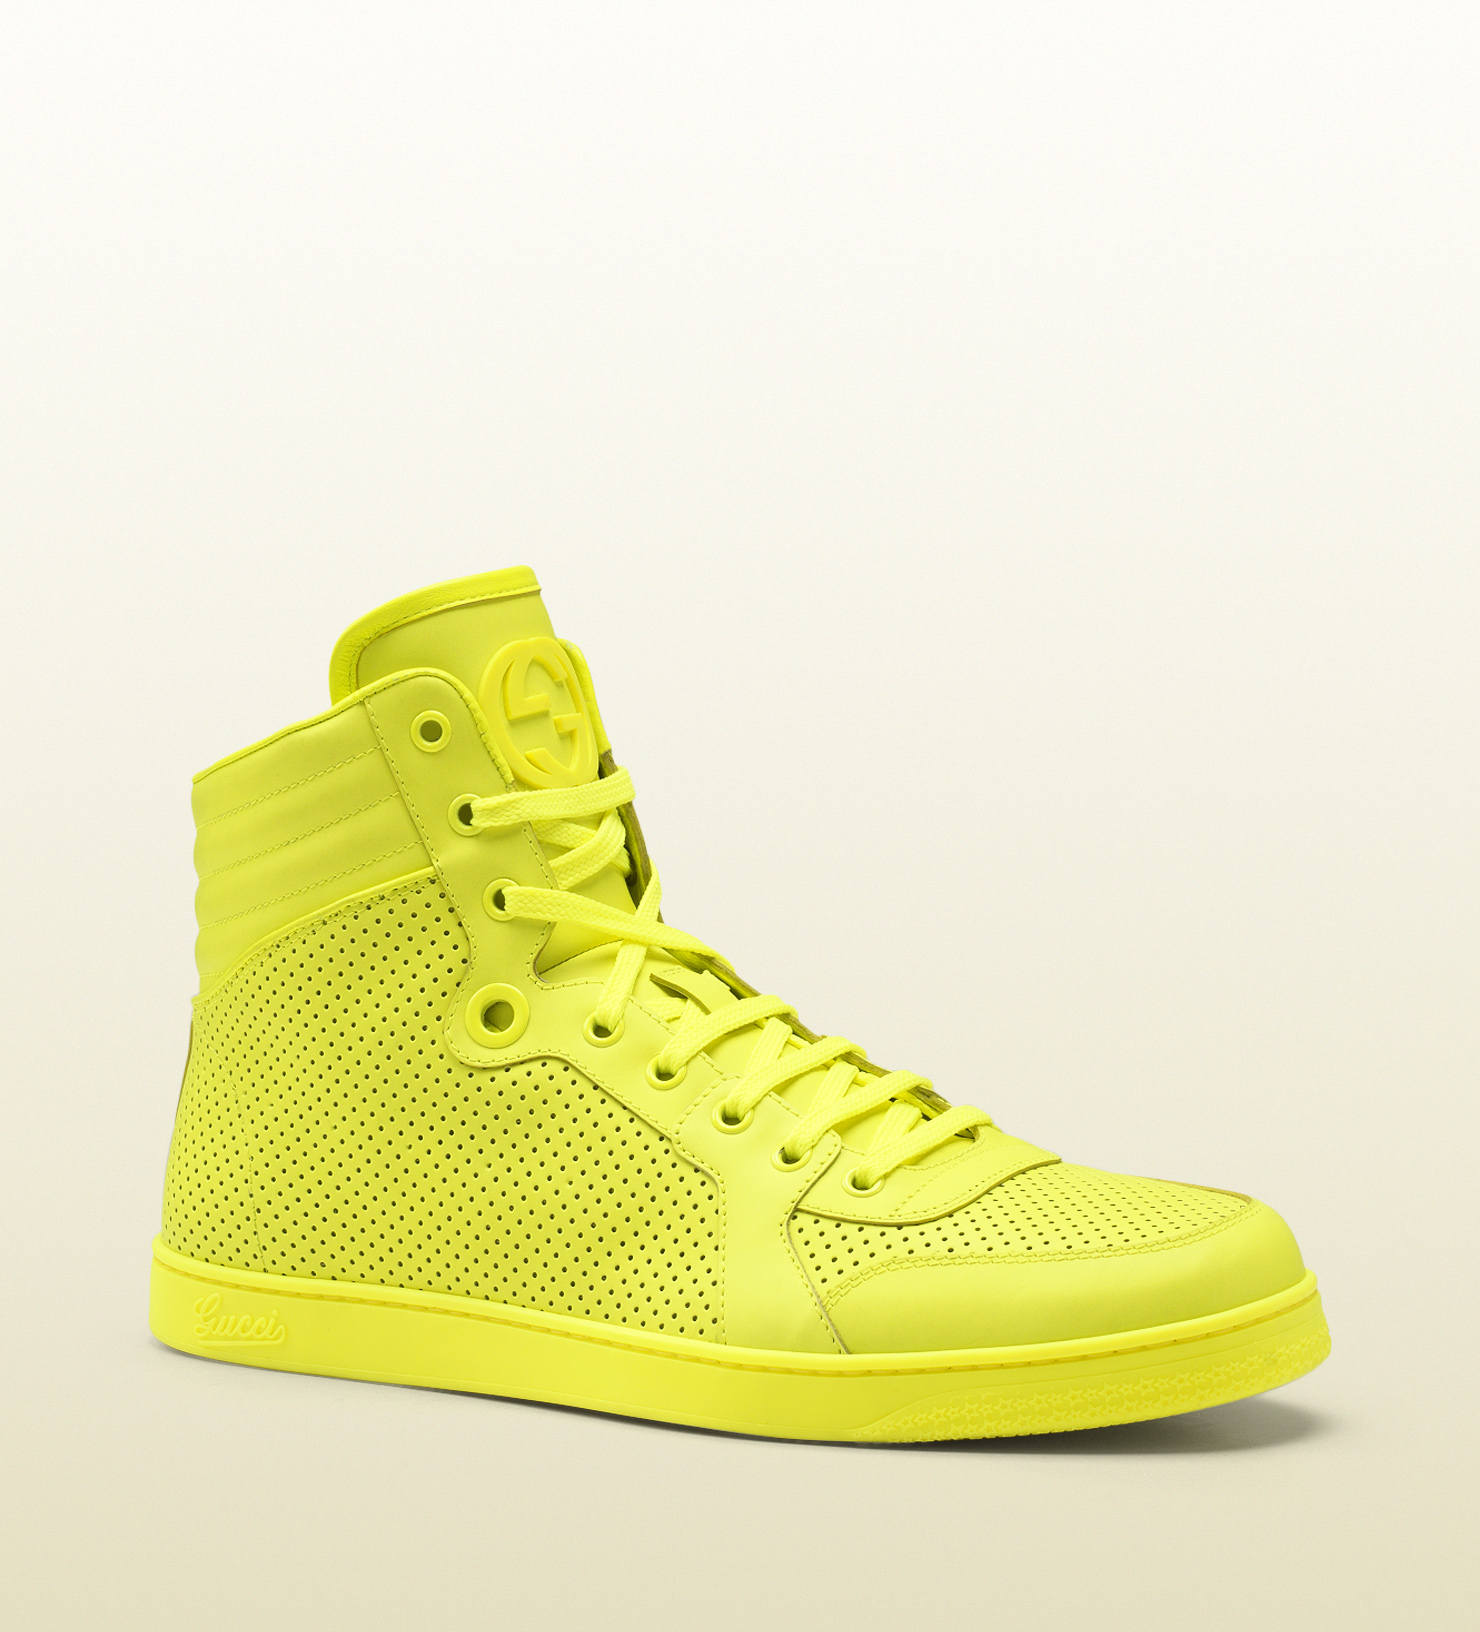 Gucci - neon yellow leather high-top sneaker 322730DBL507102